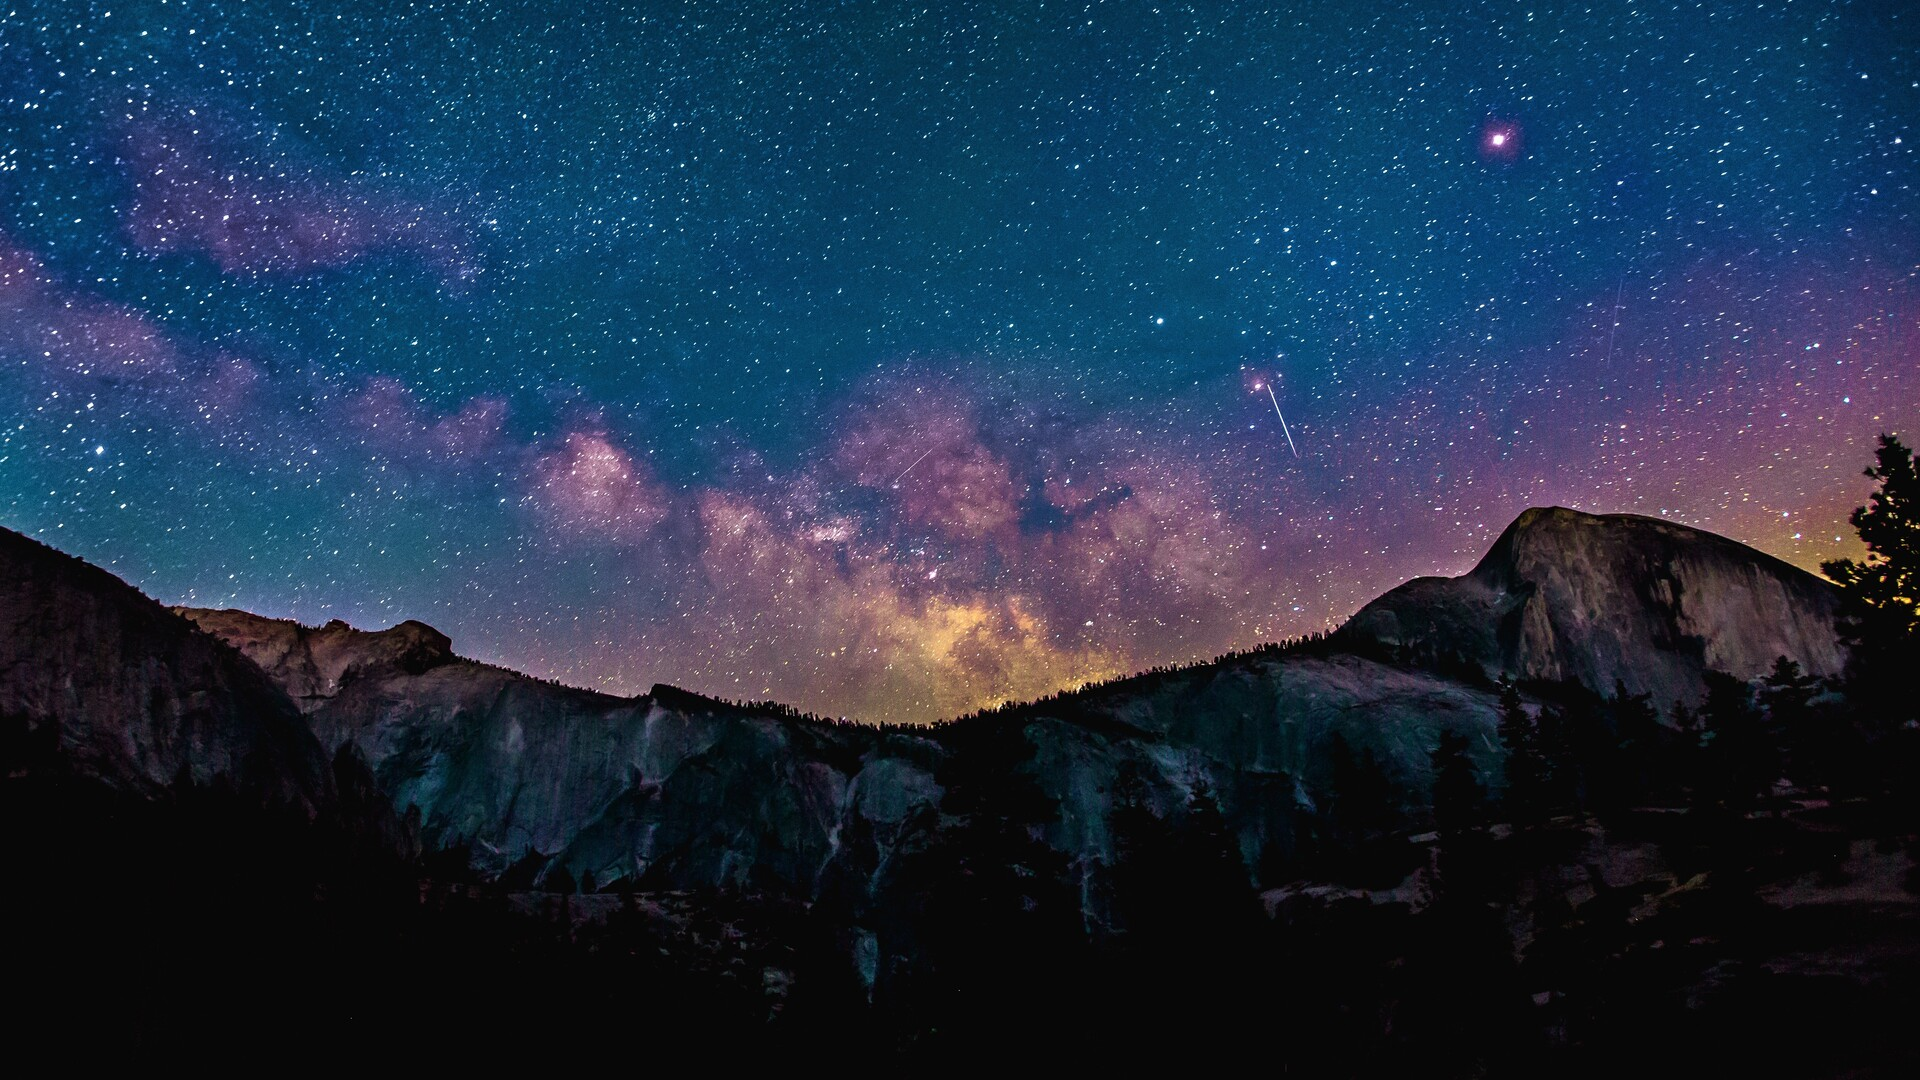 1920x1080 Stars Space Landscape Mountains Laptop Full Hd